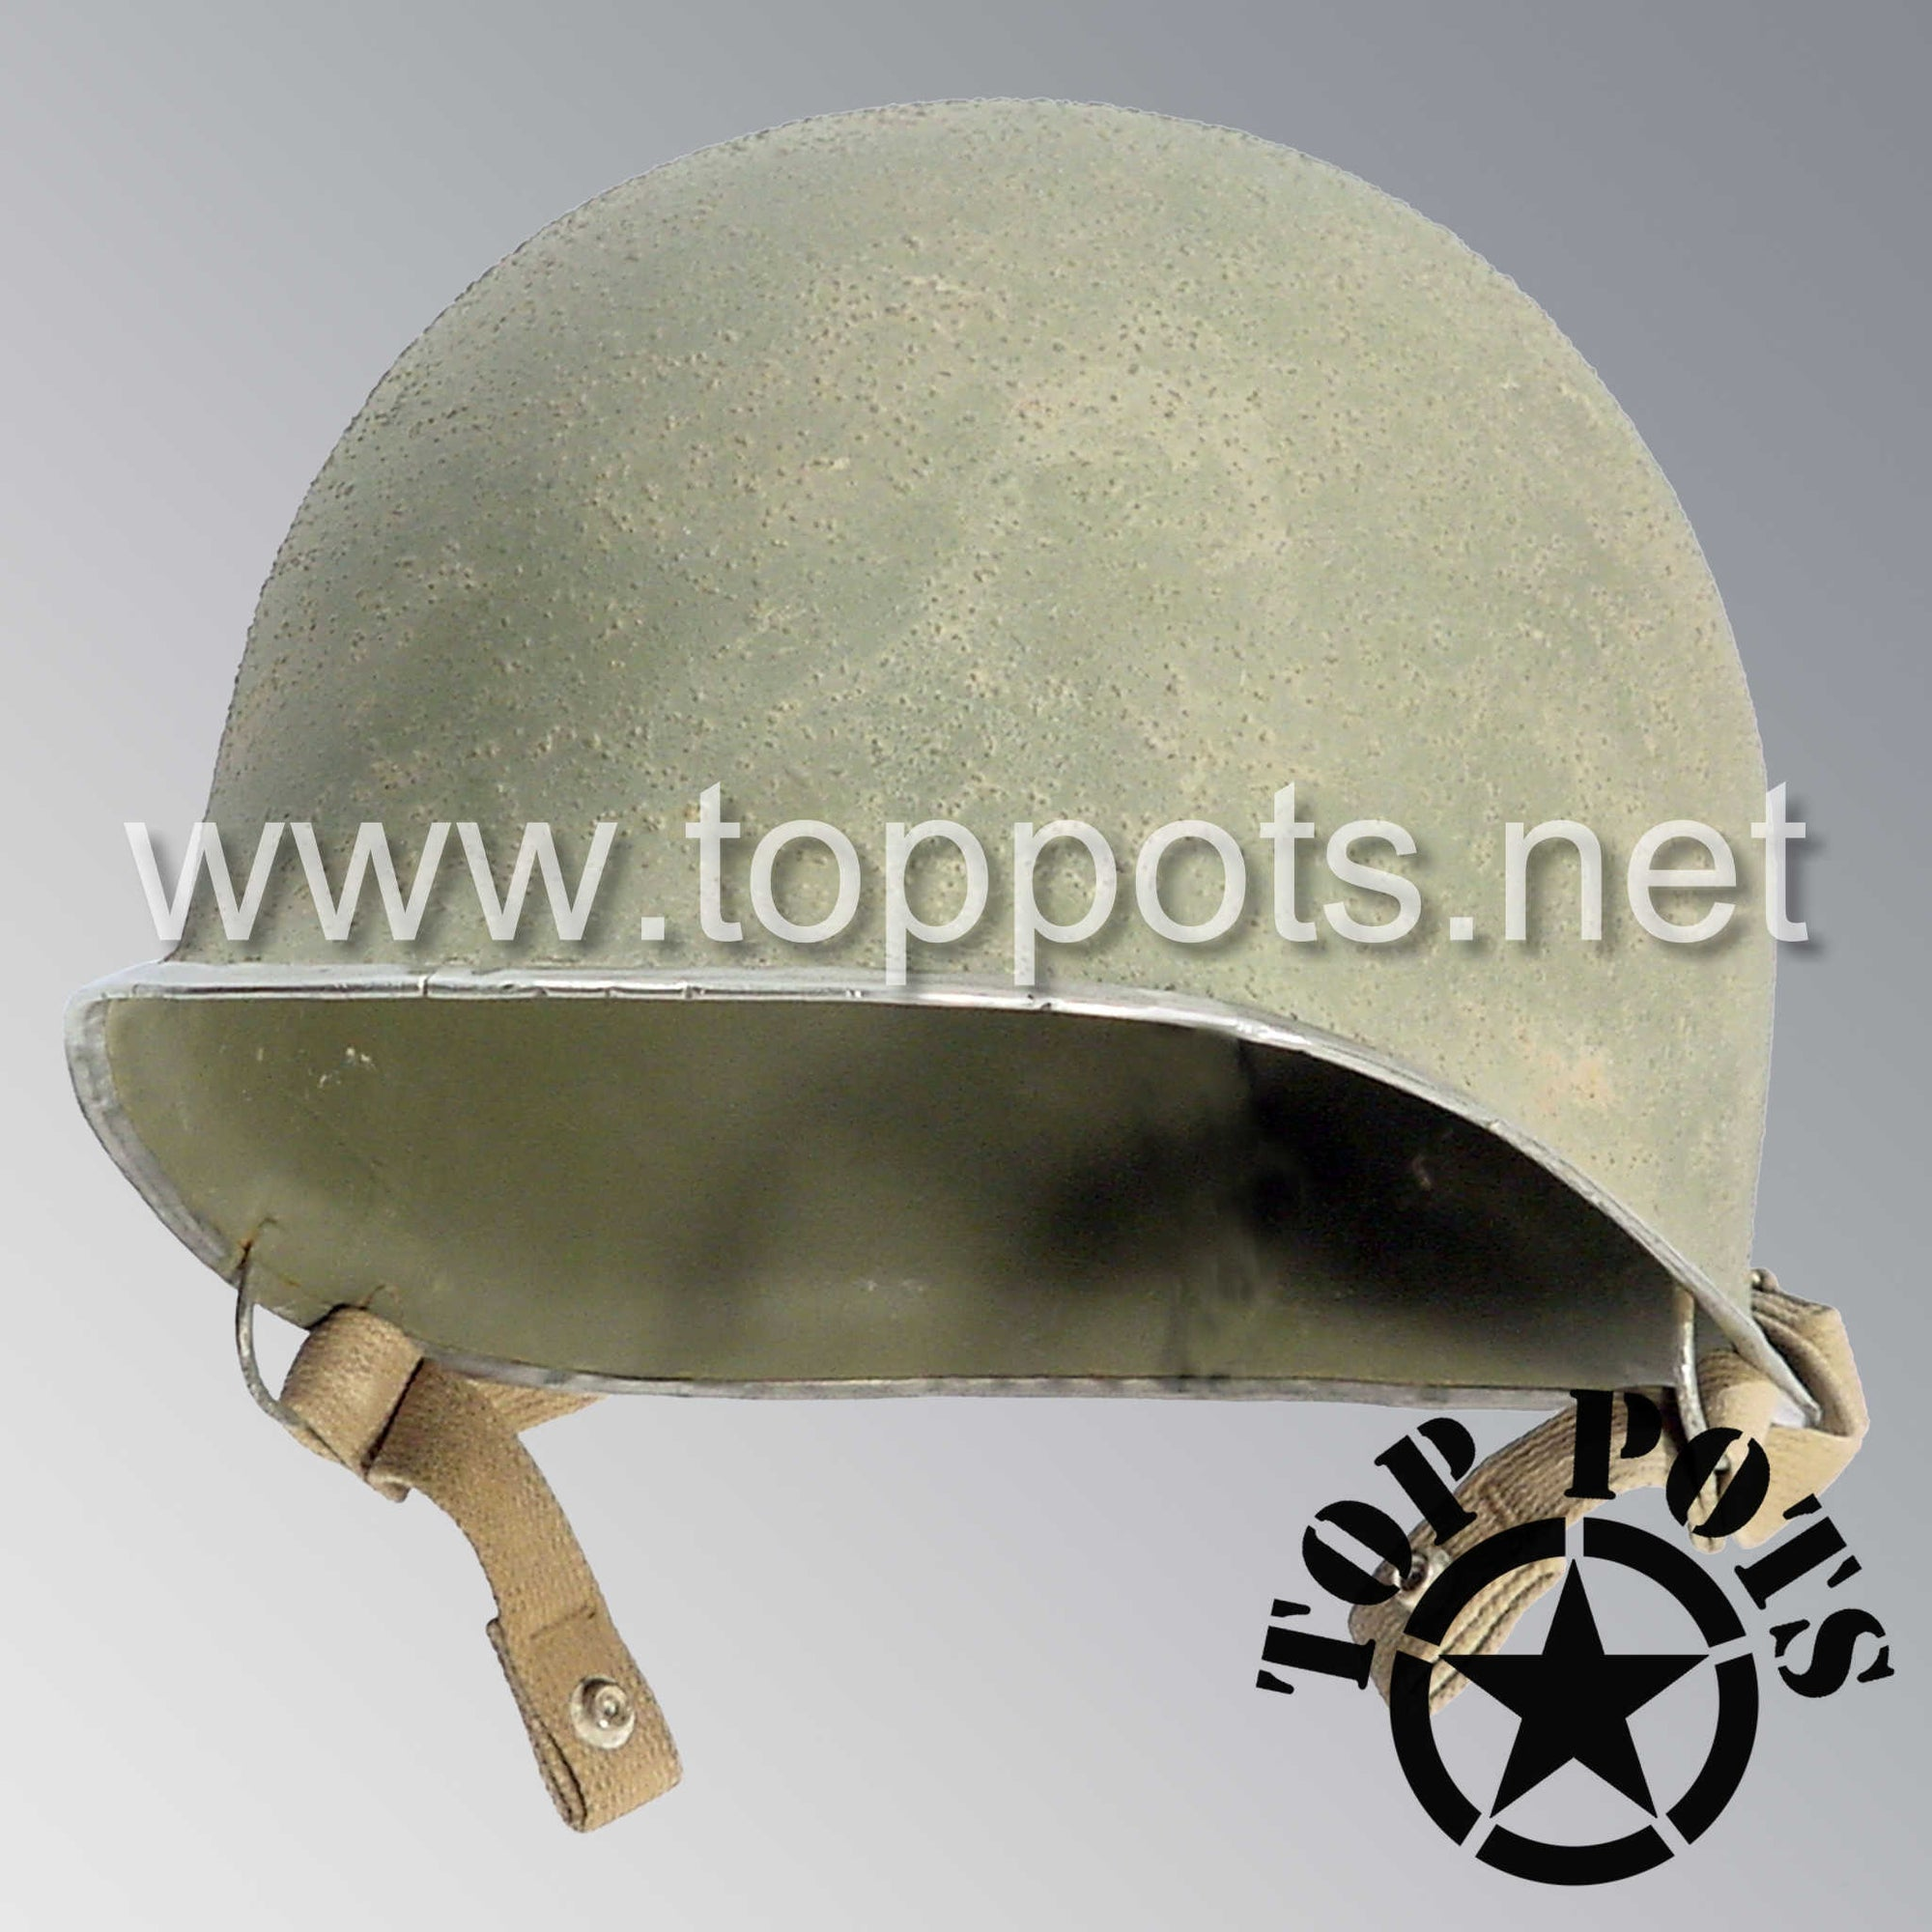 Image 1 of WWII US Army Aged Original M2 Paratrooper Airborne Helmet D Bale Shell with Chinstraps